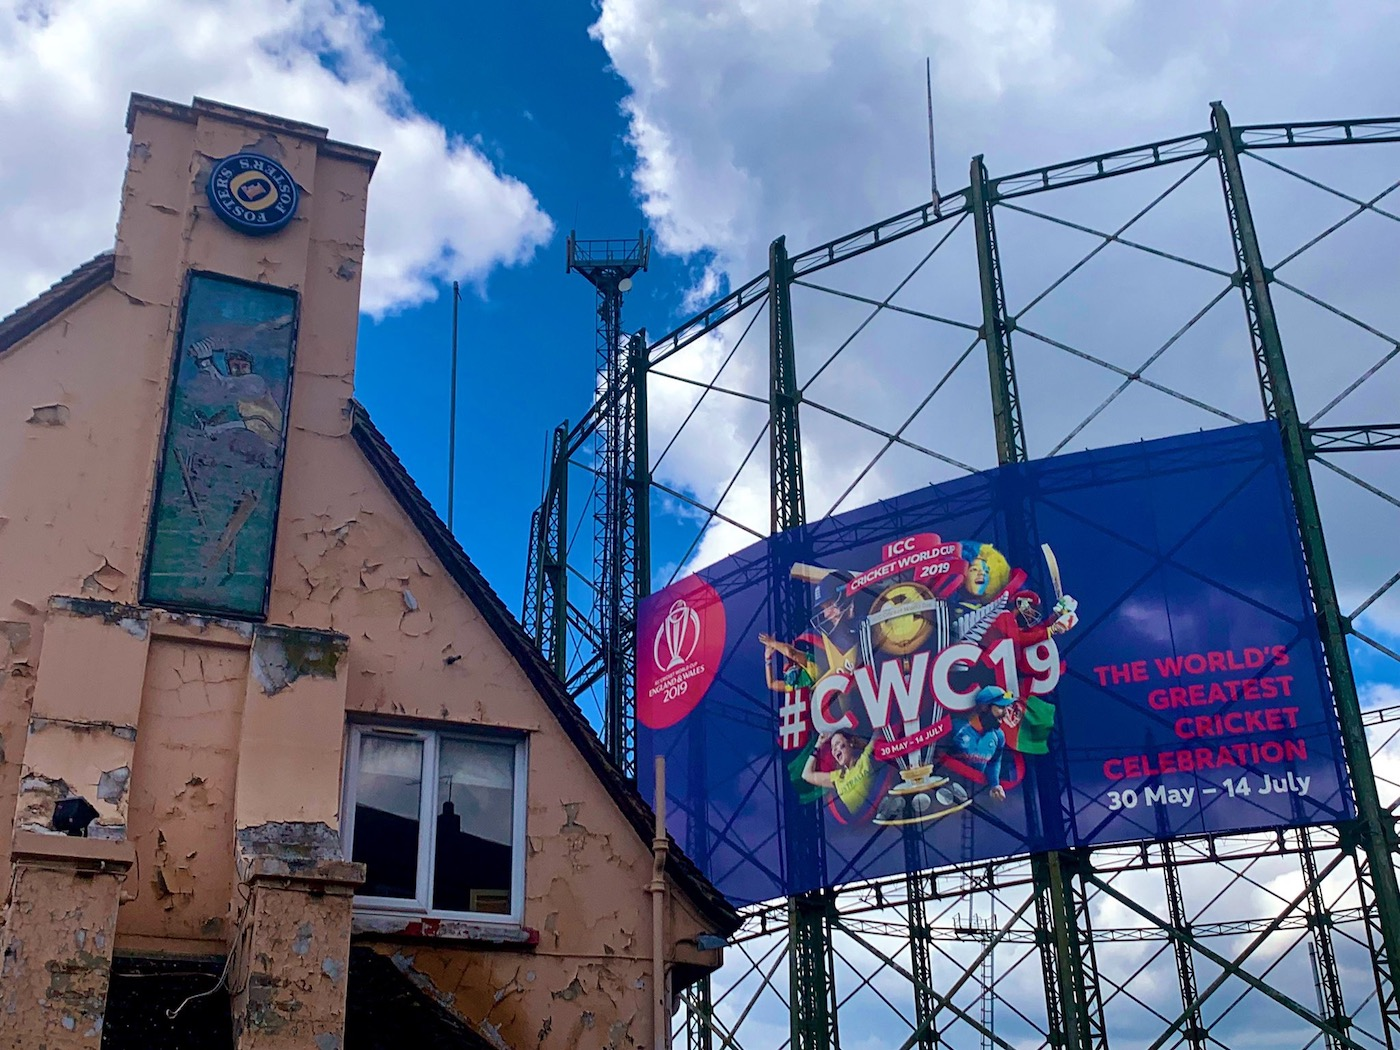 Ring out the old, ring in the new: the gasometers at the Oval get in on the World Cup action, while an old cricket-themed pub awaits resurrection